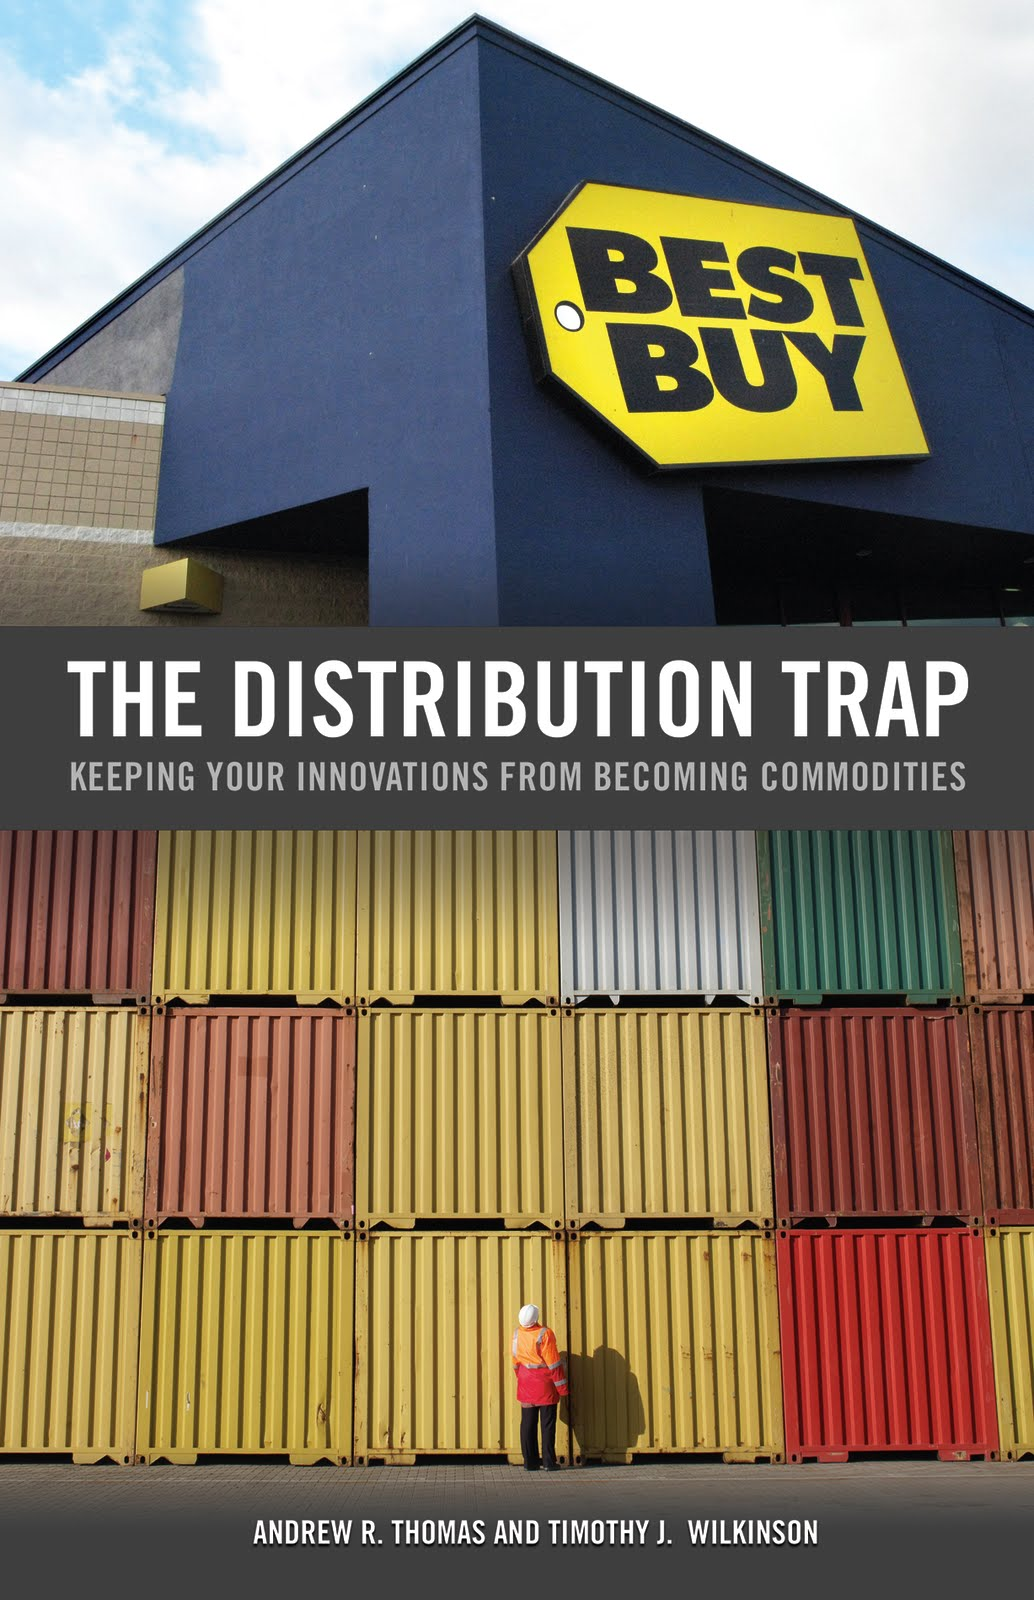 Stihl usa news the distribution trap how innovations become back in january stihl inc welcomed dr andrew r thomas author of the distribution trap keeping your innovations from becoming commodities to our publicscrutiny Images